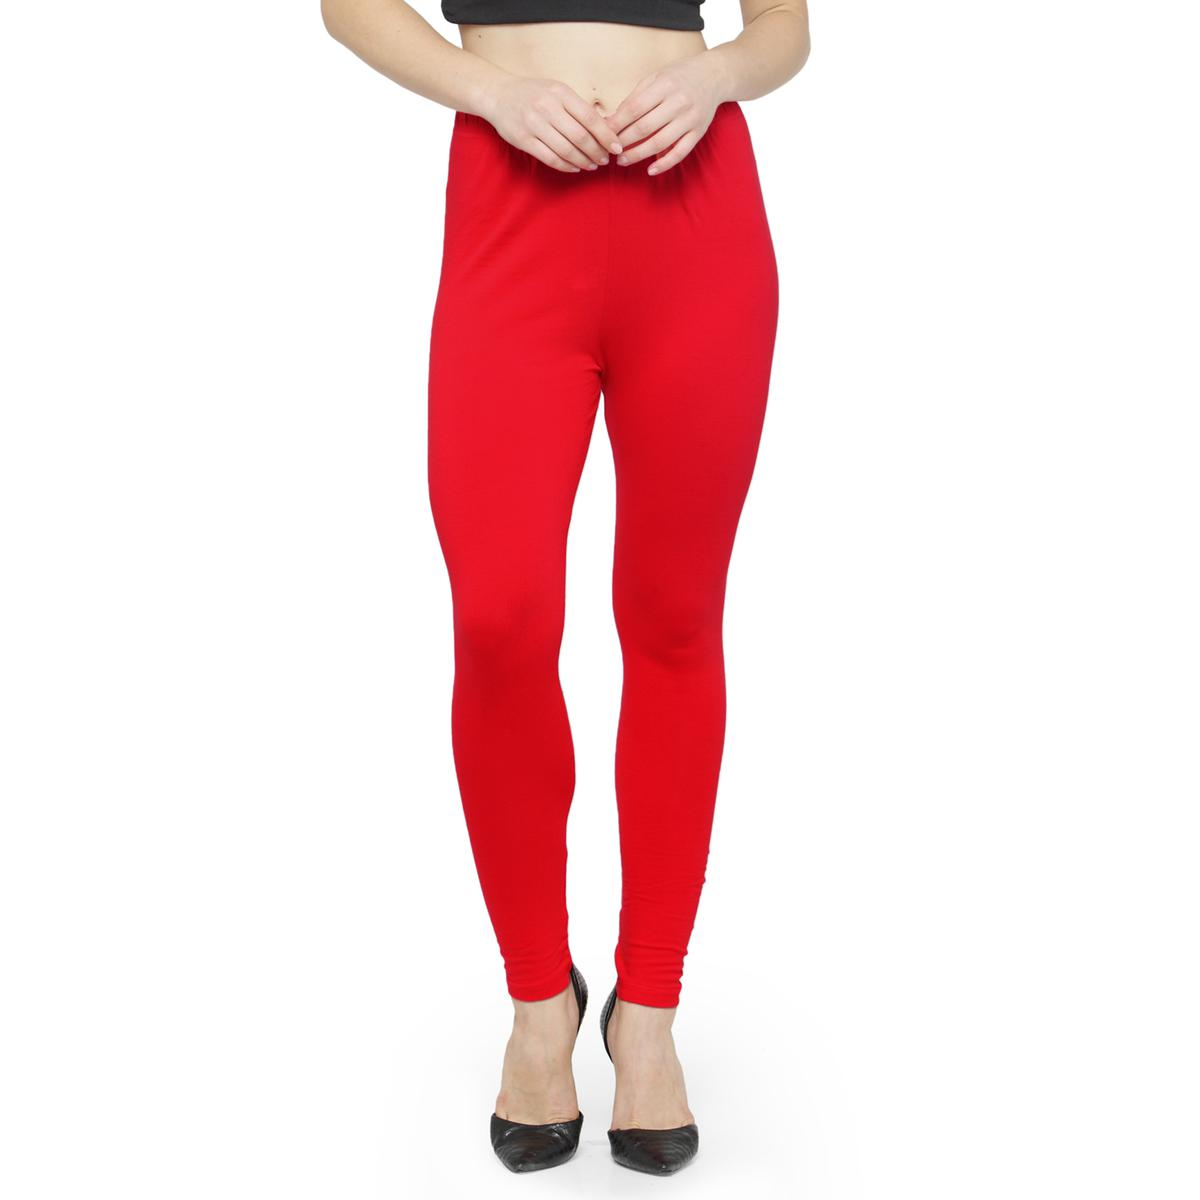 Groovy Warm Red Colored Casual Wear Ankle Length Leggings